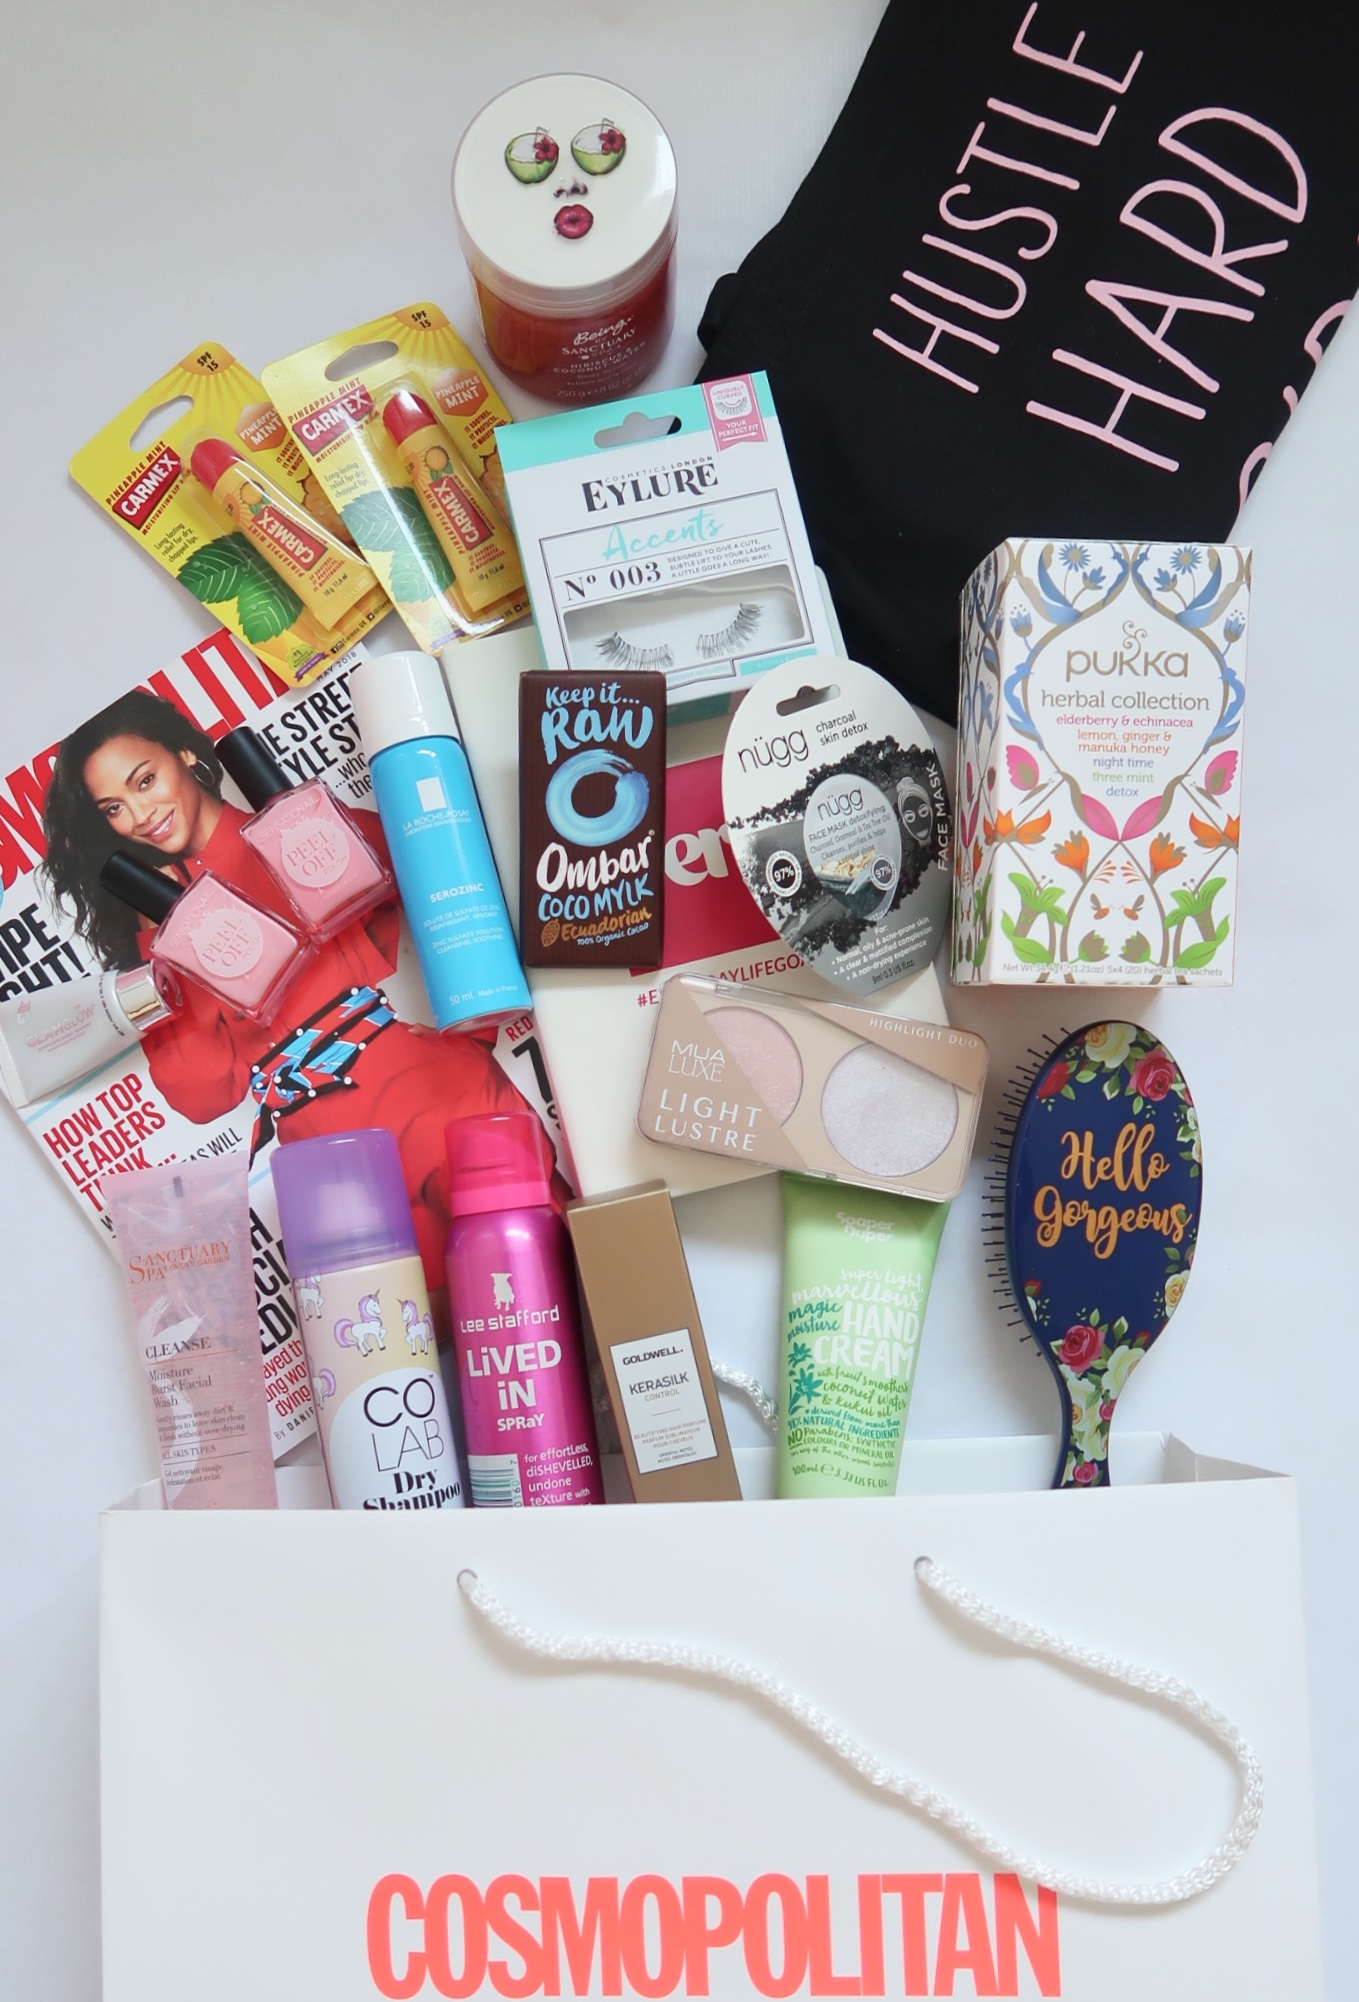 What Was In The Cosmopolitan Goodie Bag?